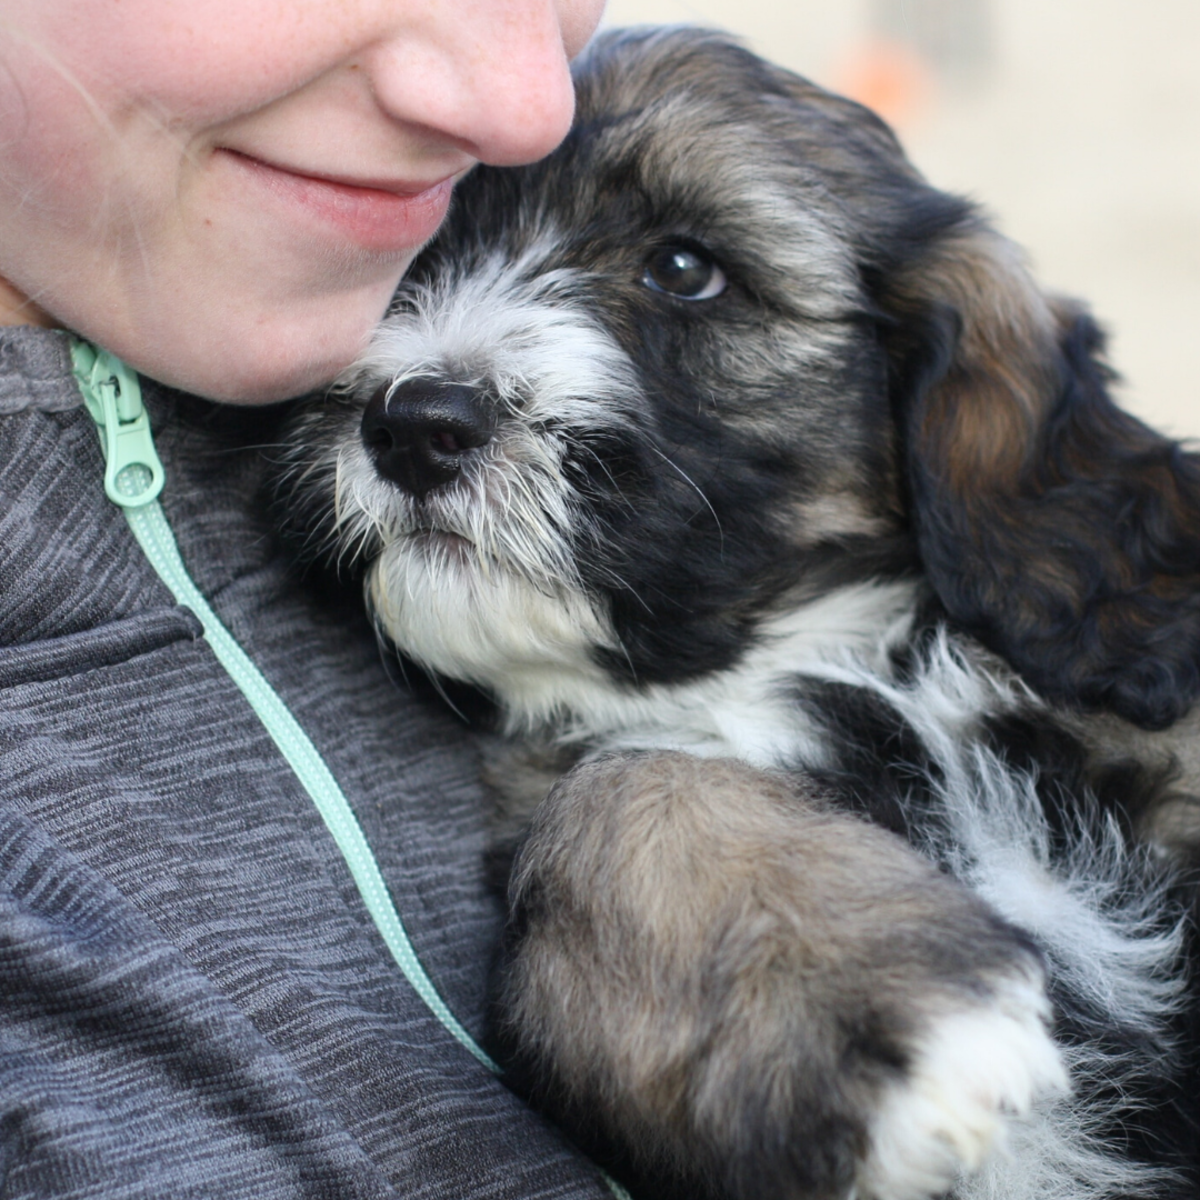 Know what type of environment your puppy comes from, and only work with ethical breeders.